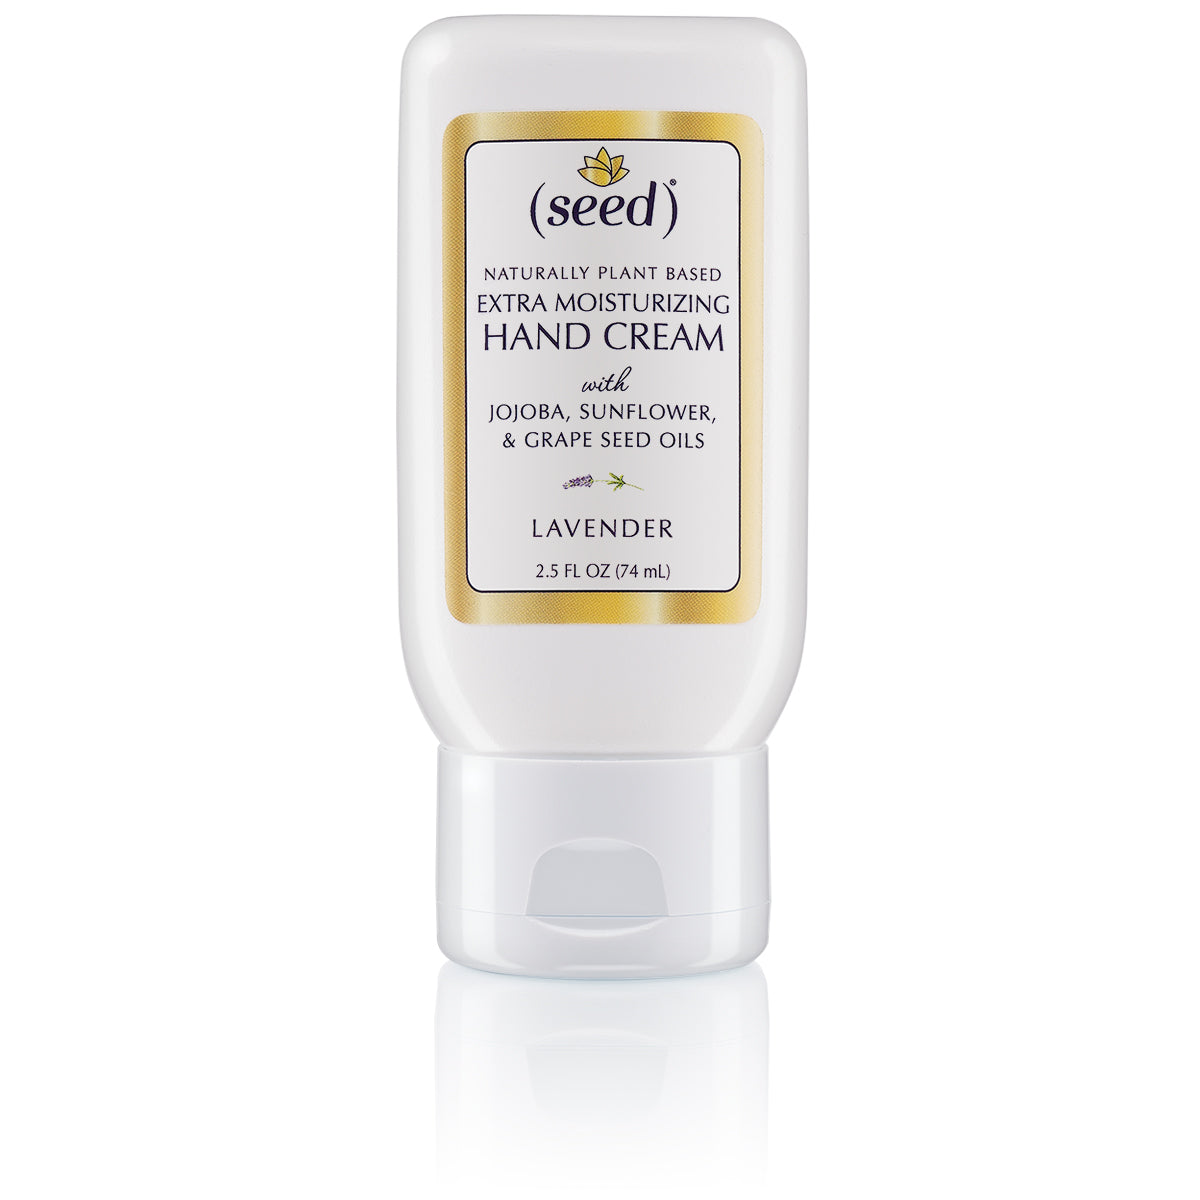 Seed Lavender Extra Moisturizing Hand Cream, formerly known as Seed Healthy Hand Cream